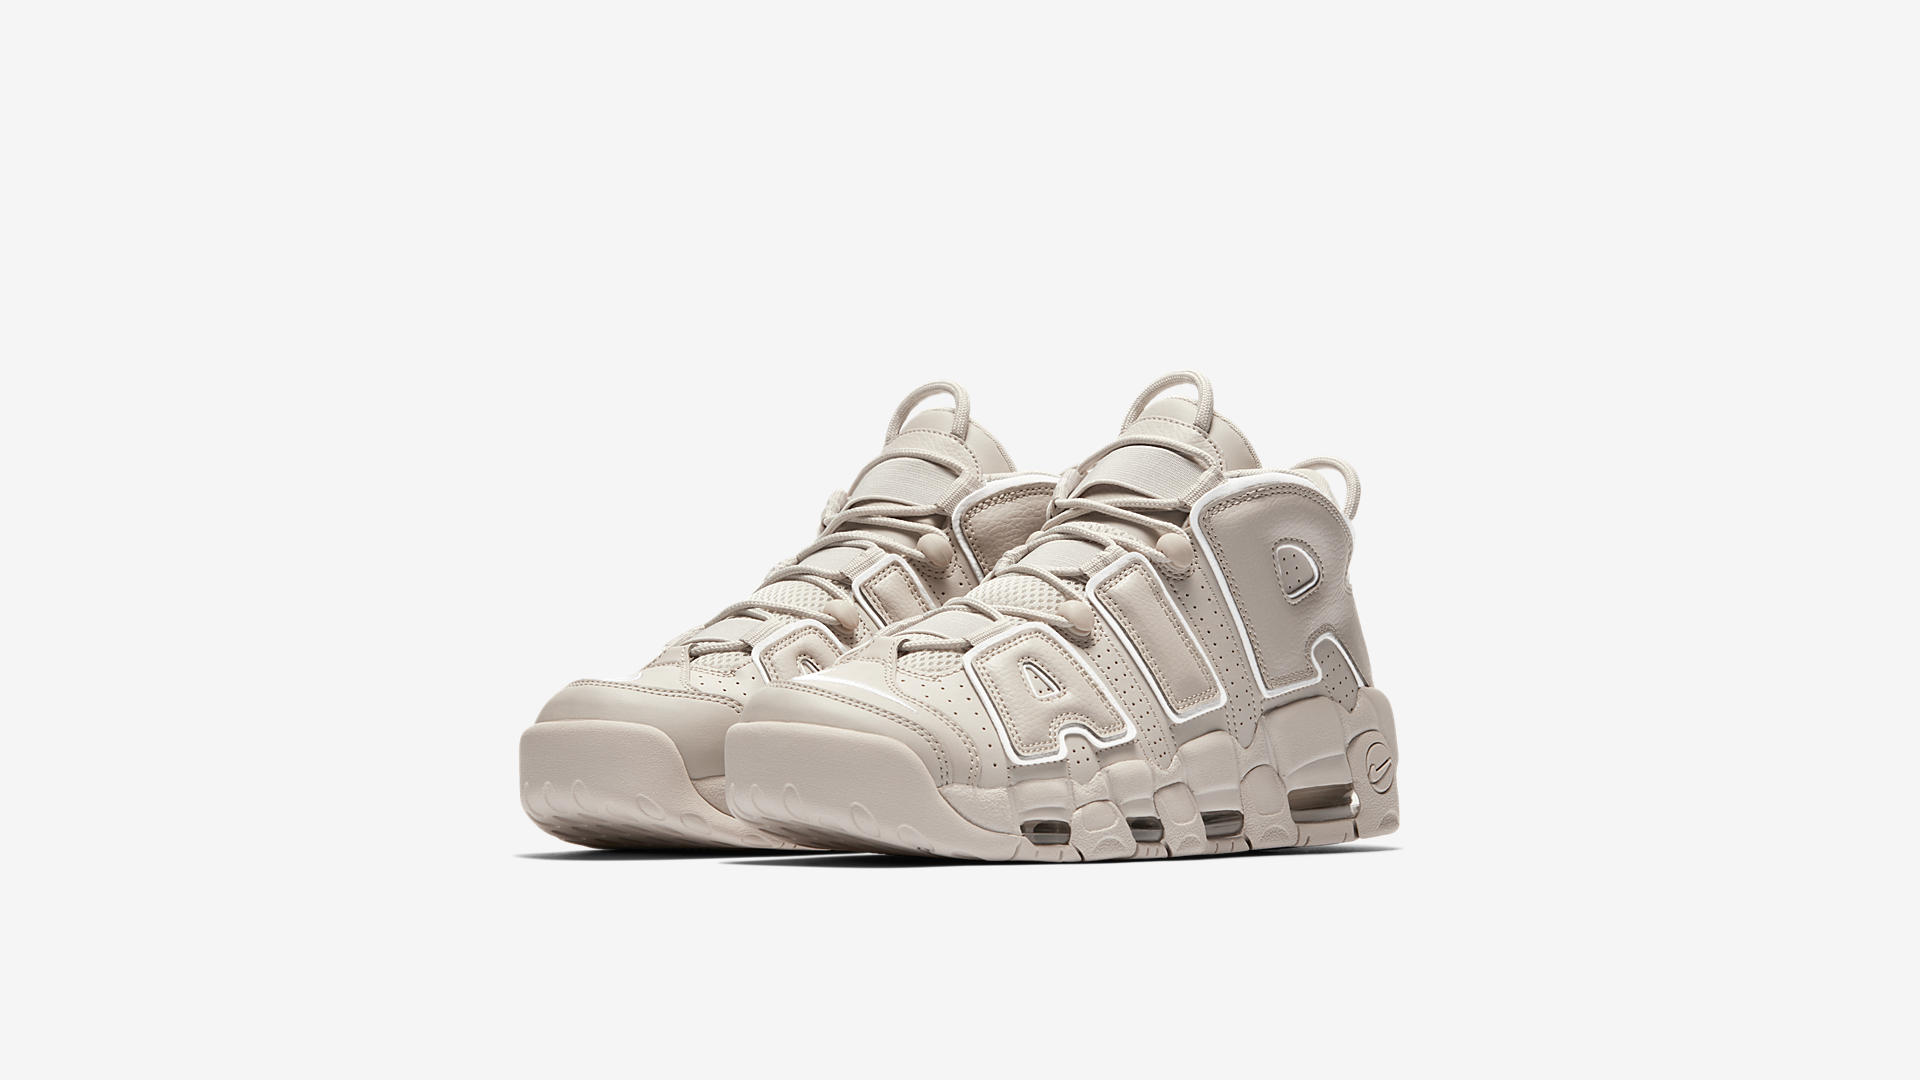 921948 001 Nike Air More Uptempo Light Bone 1